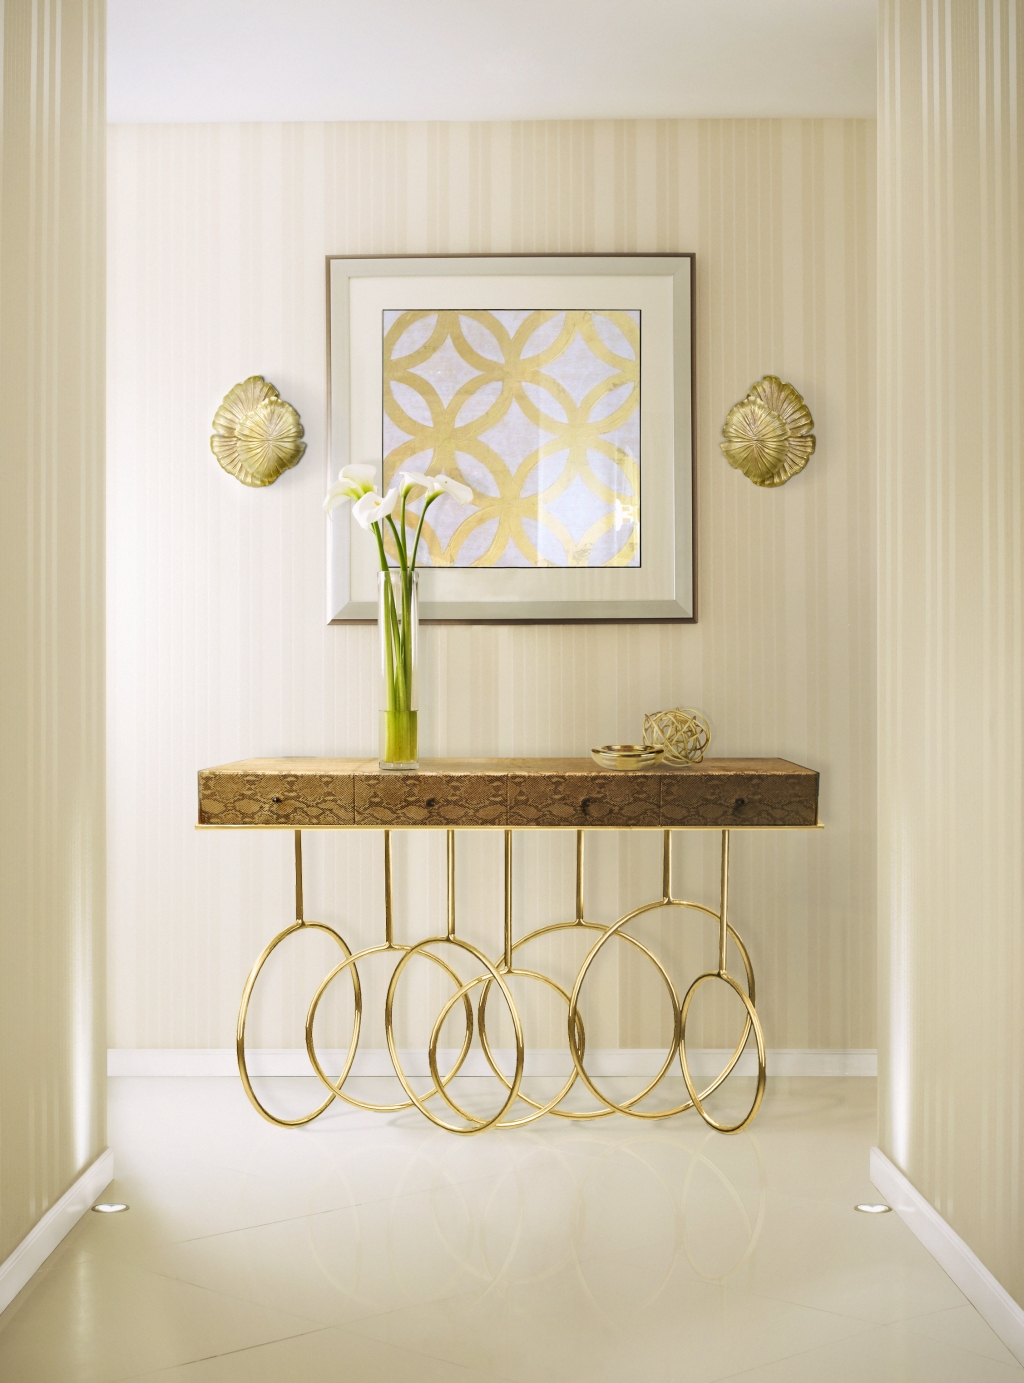 10 Creative Ways to Décor your Living Room with Sconces Designs2 elegant sconces Elegant Sconces for your Living Room Design 10 Creative Ways to D  cor your Living Room with Sconces Designs2